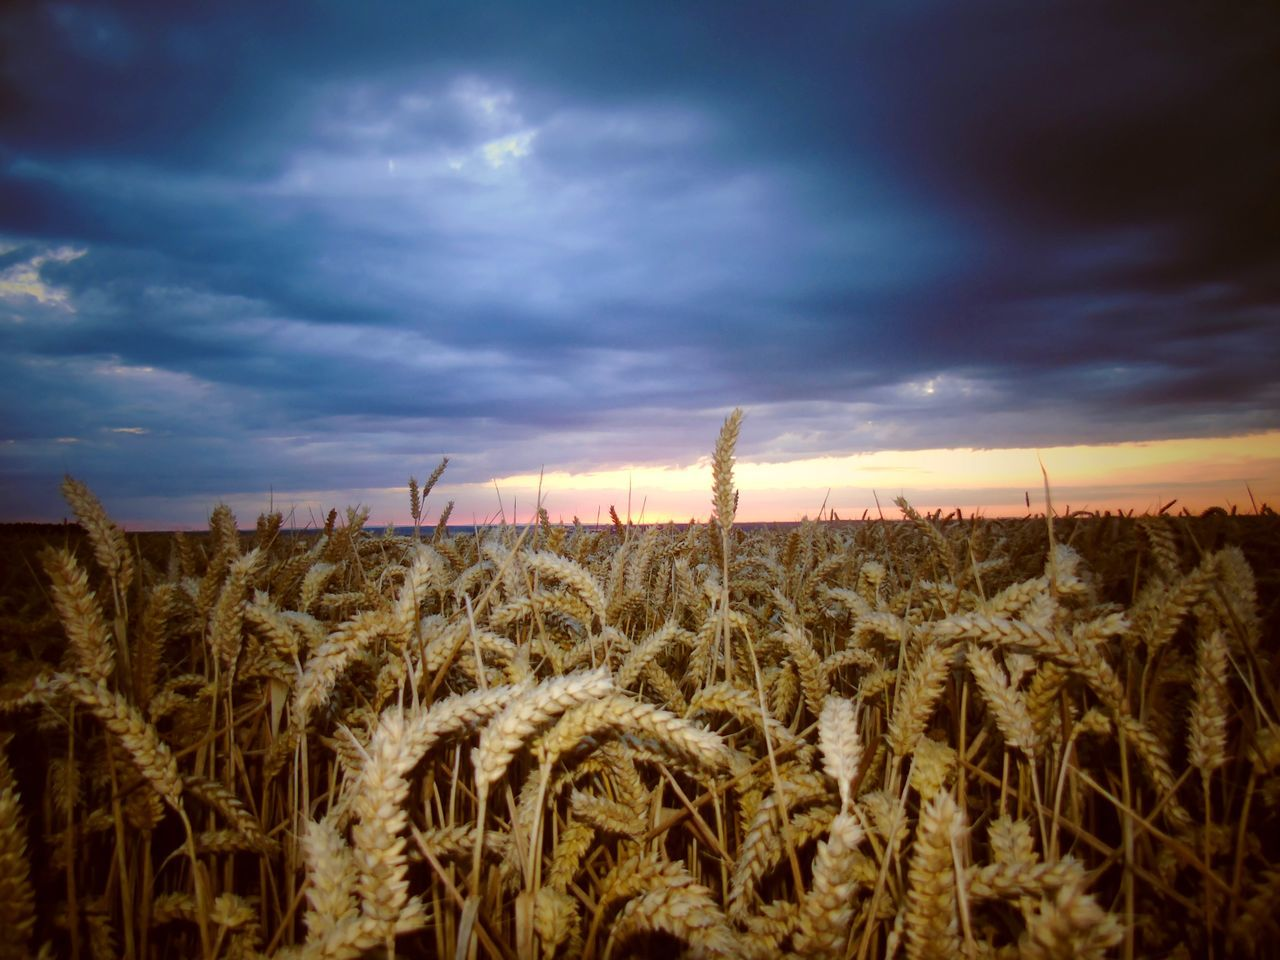 sky, agriculture, field, rural scene, farm, crop, growth, tranquility, tranquil scene, nature, cereal plant, landscape, cloud - sky, beauty in nature, scenics, no people, sunset, wheat, plant, outdoors, day